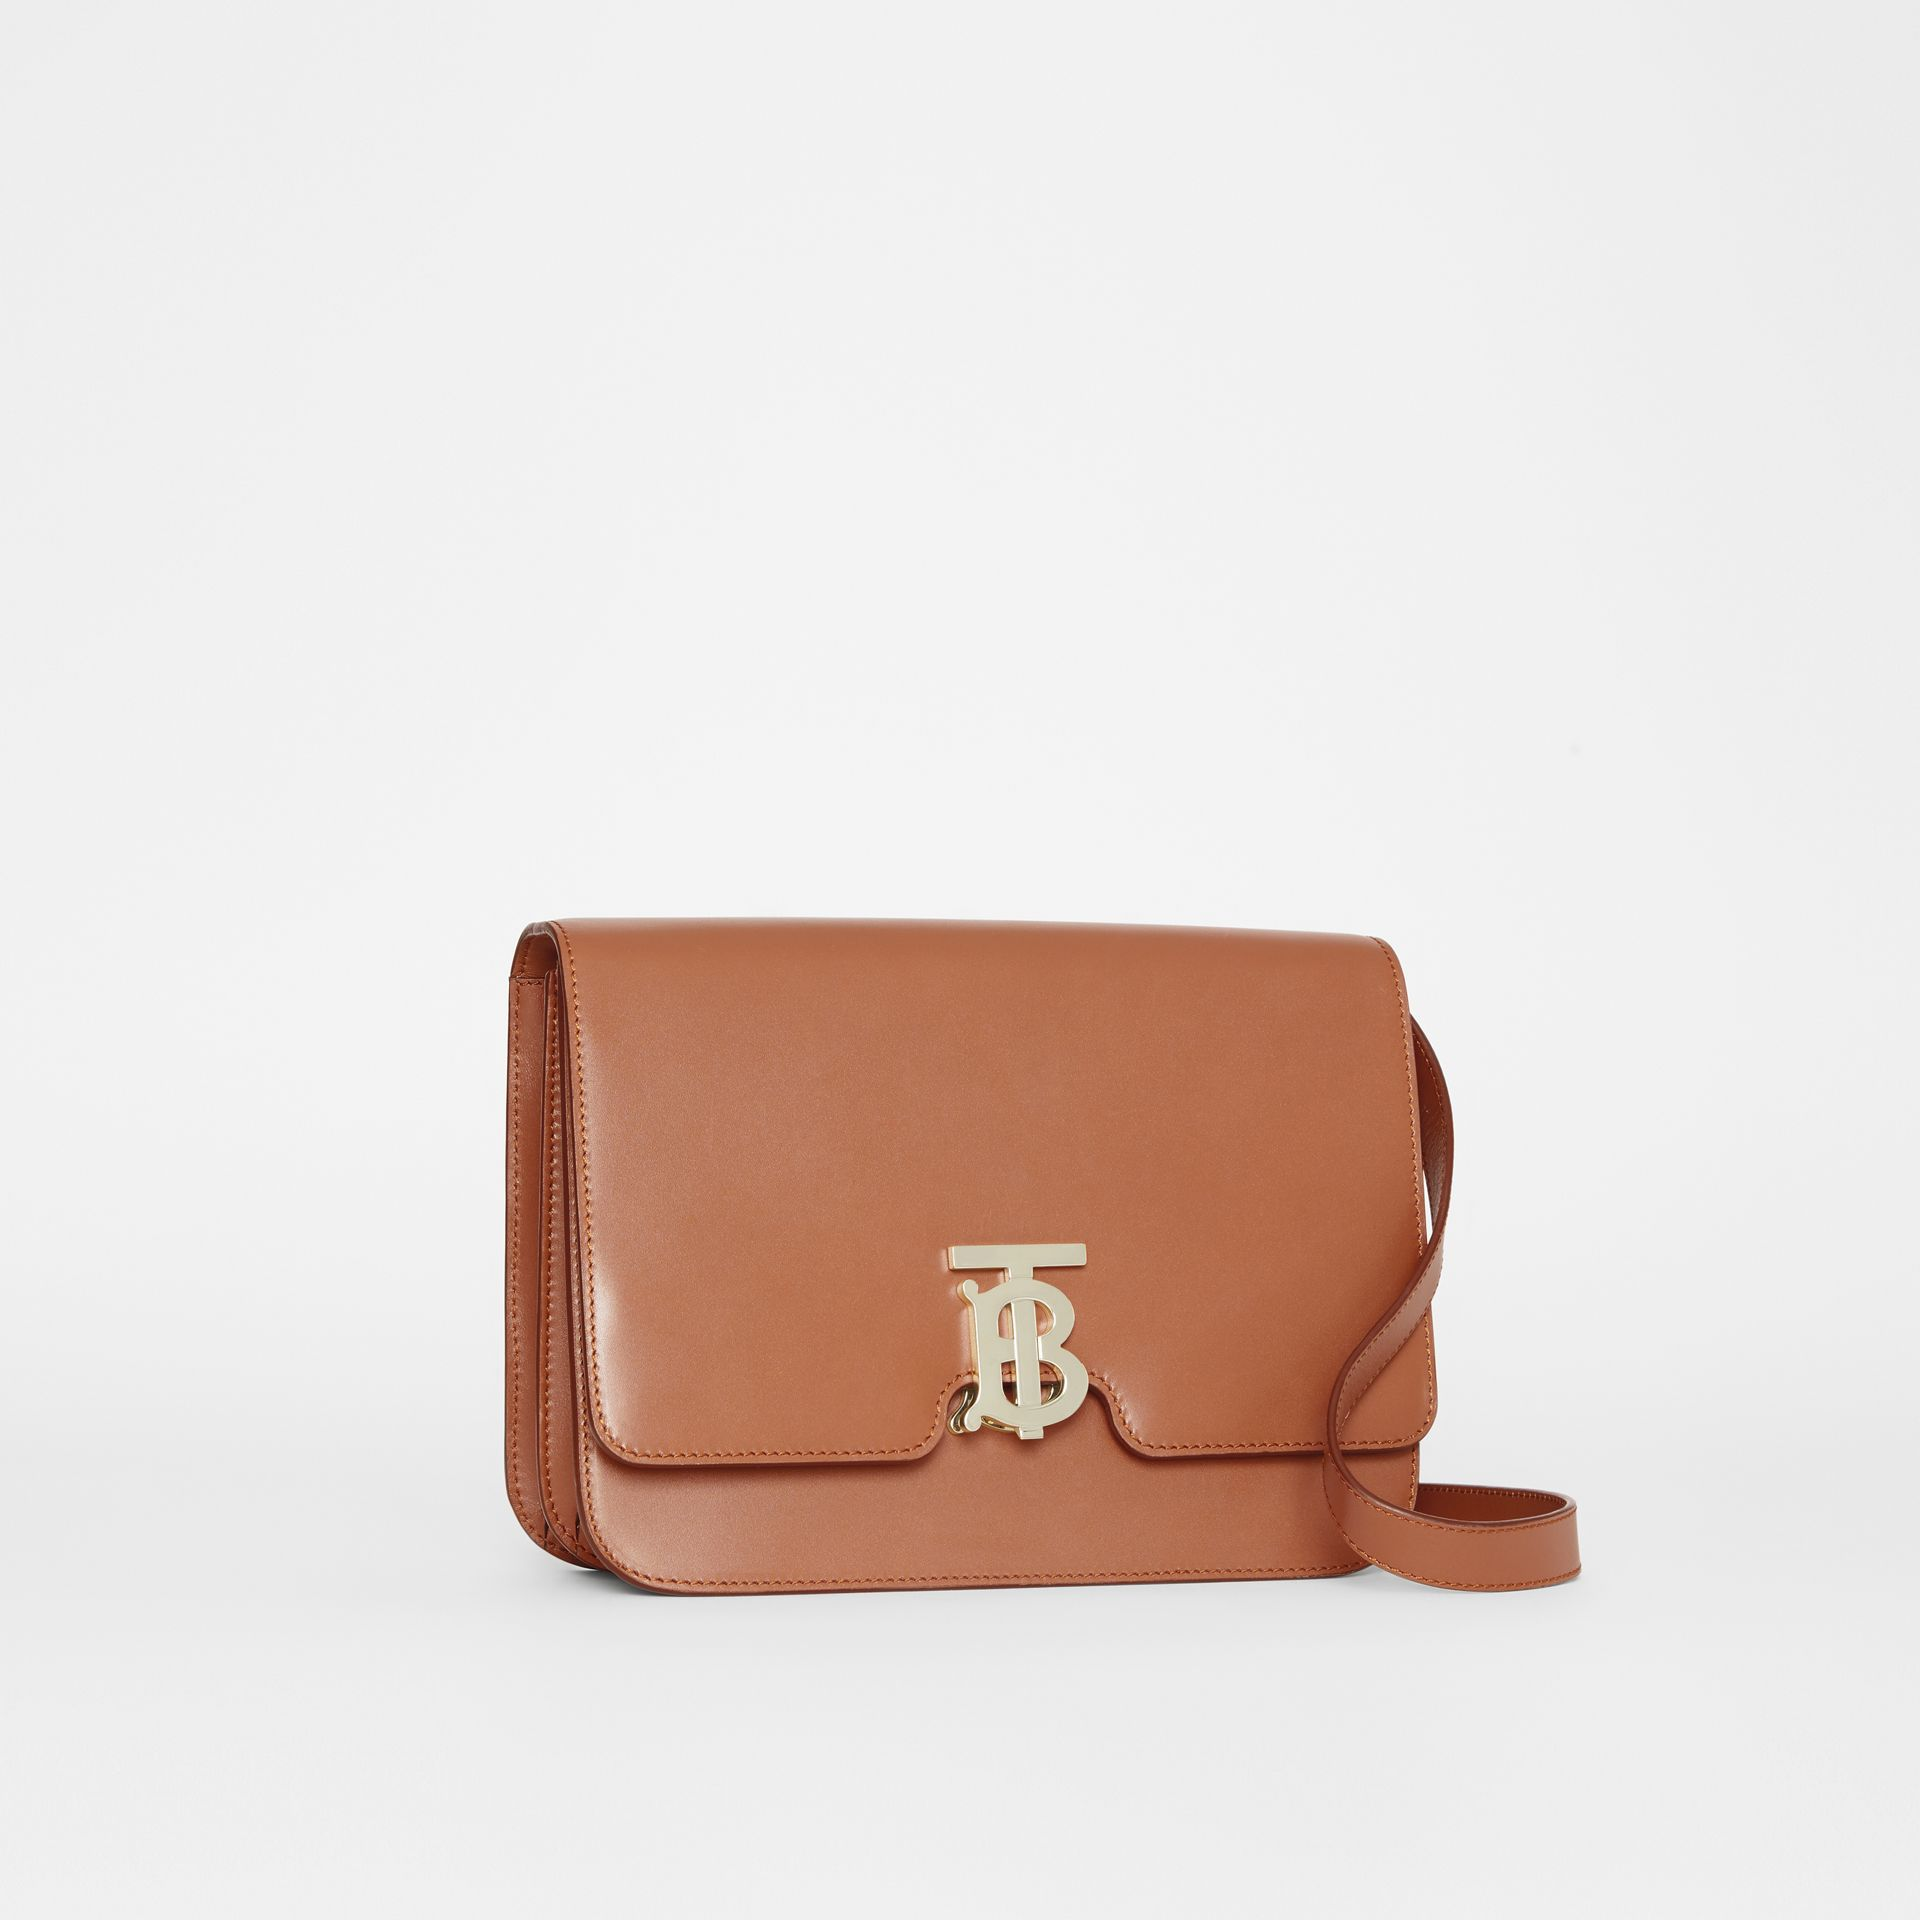 Medium Leather TB Bag in Malt Brown - Women | Burberry - gallery image 6